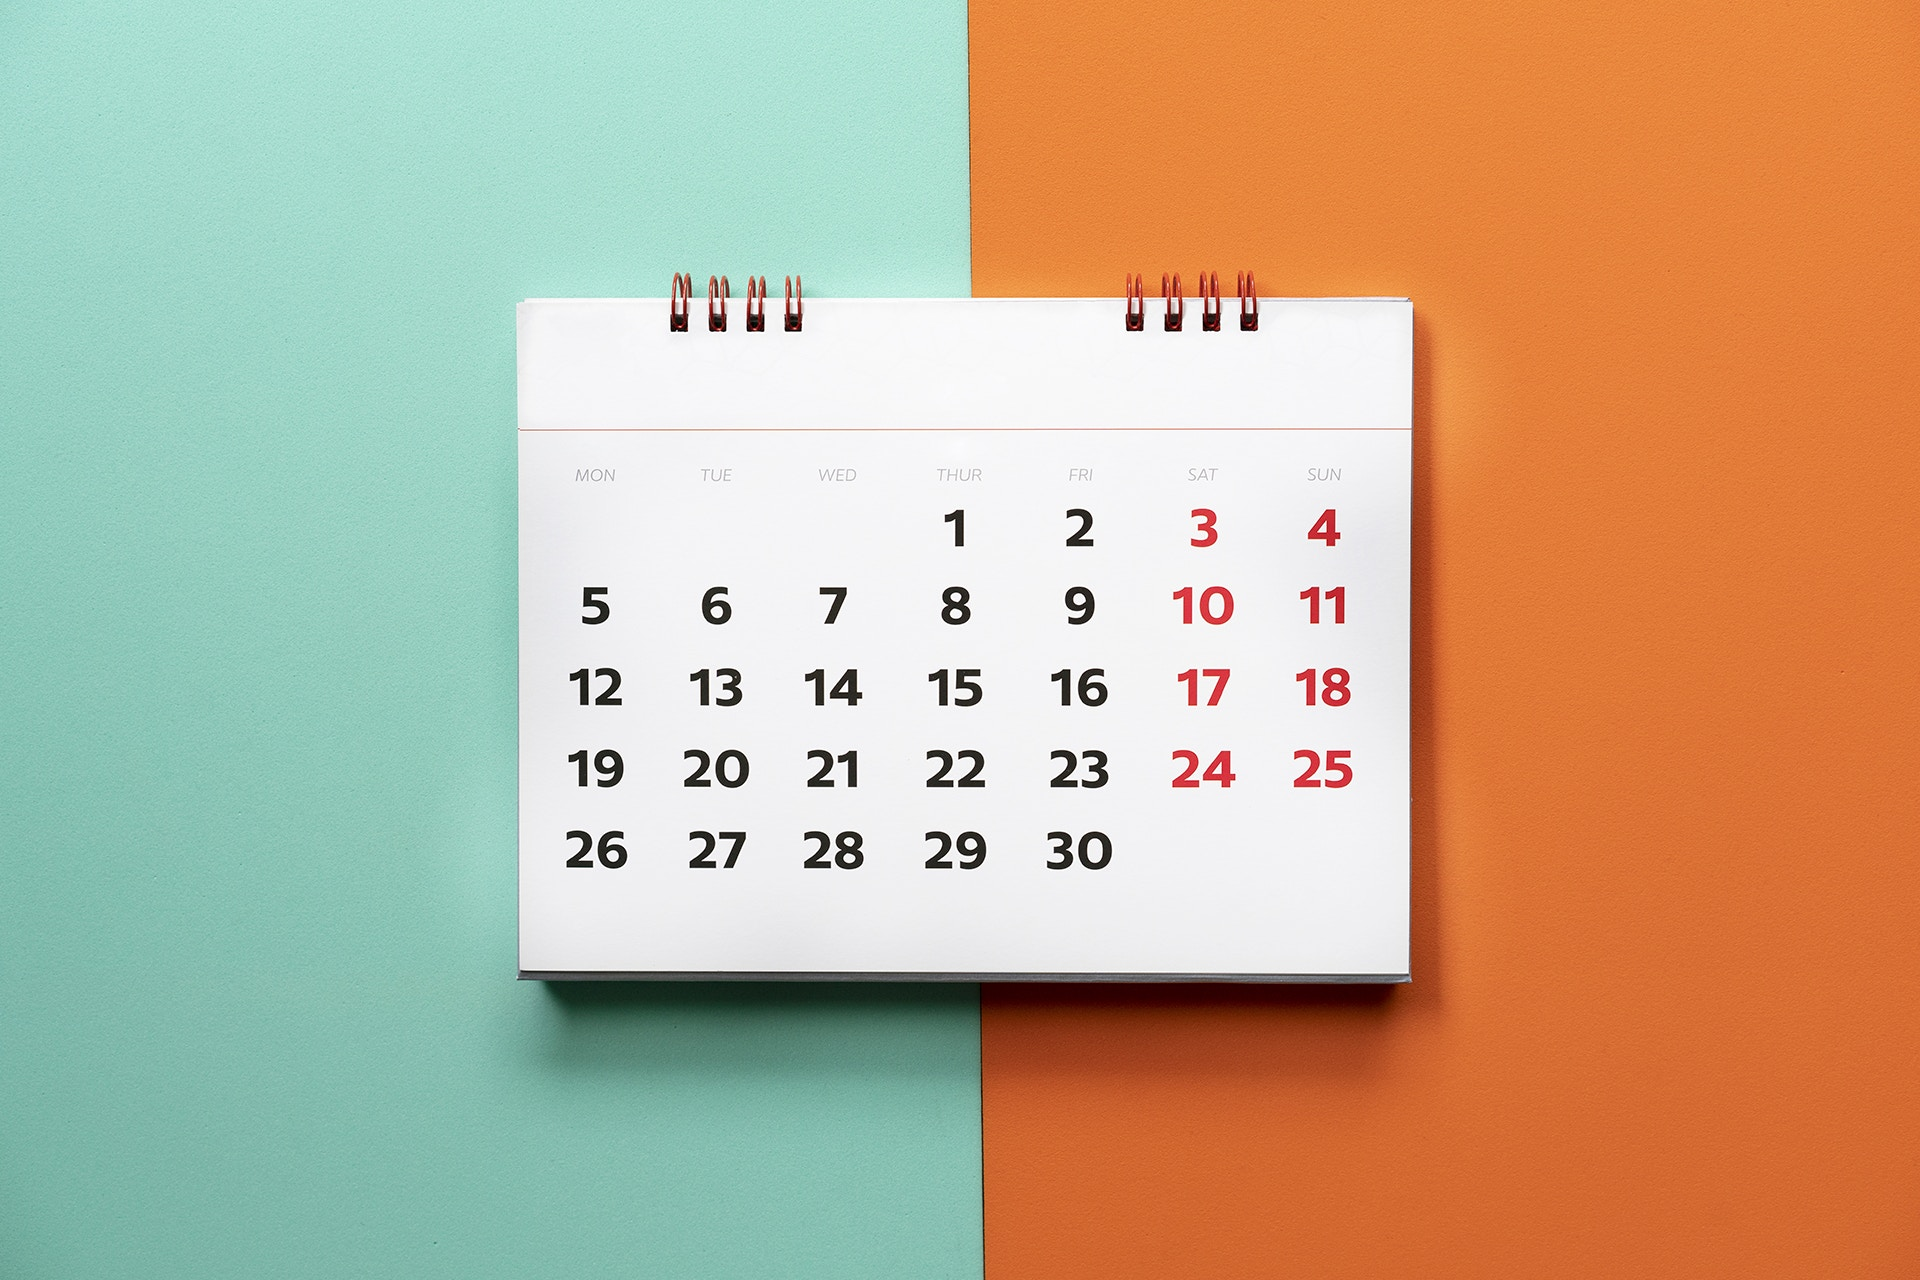 green and orange background with a calendar in the foreground